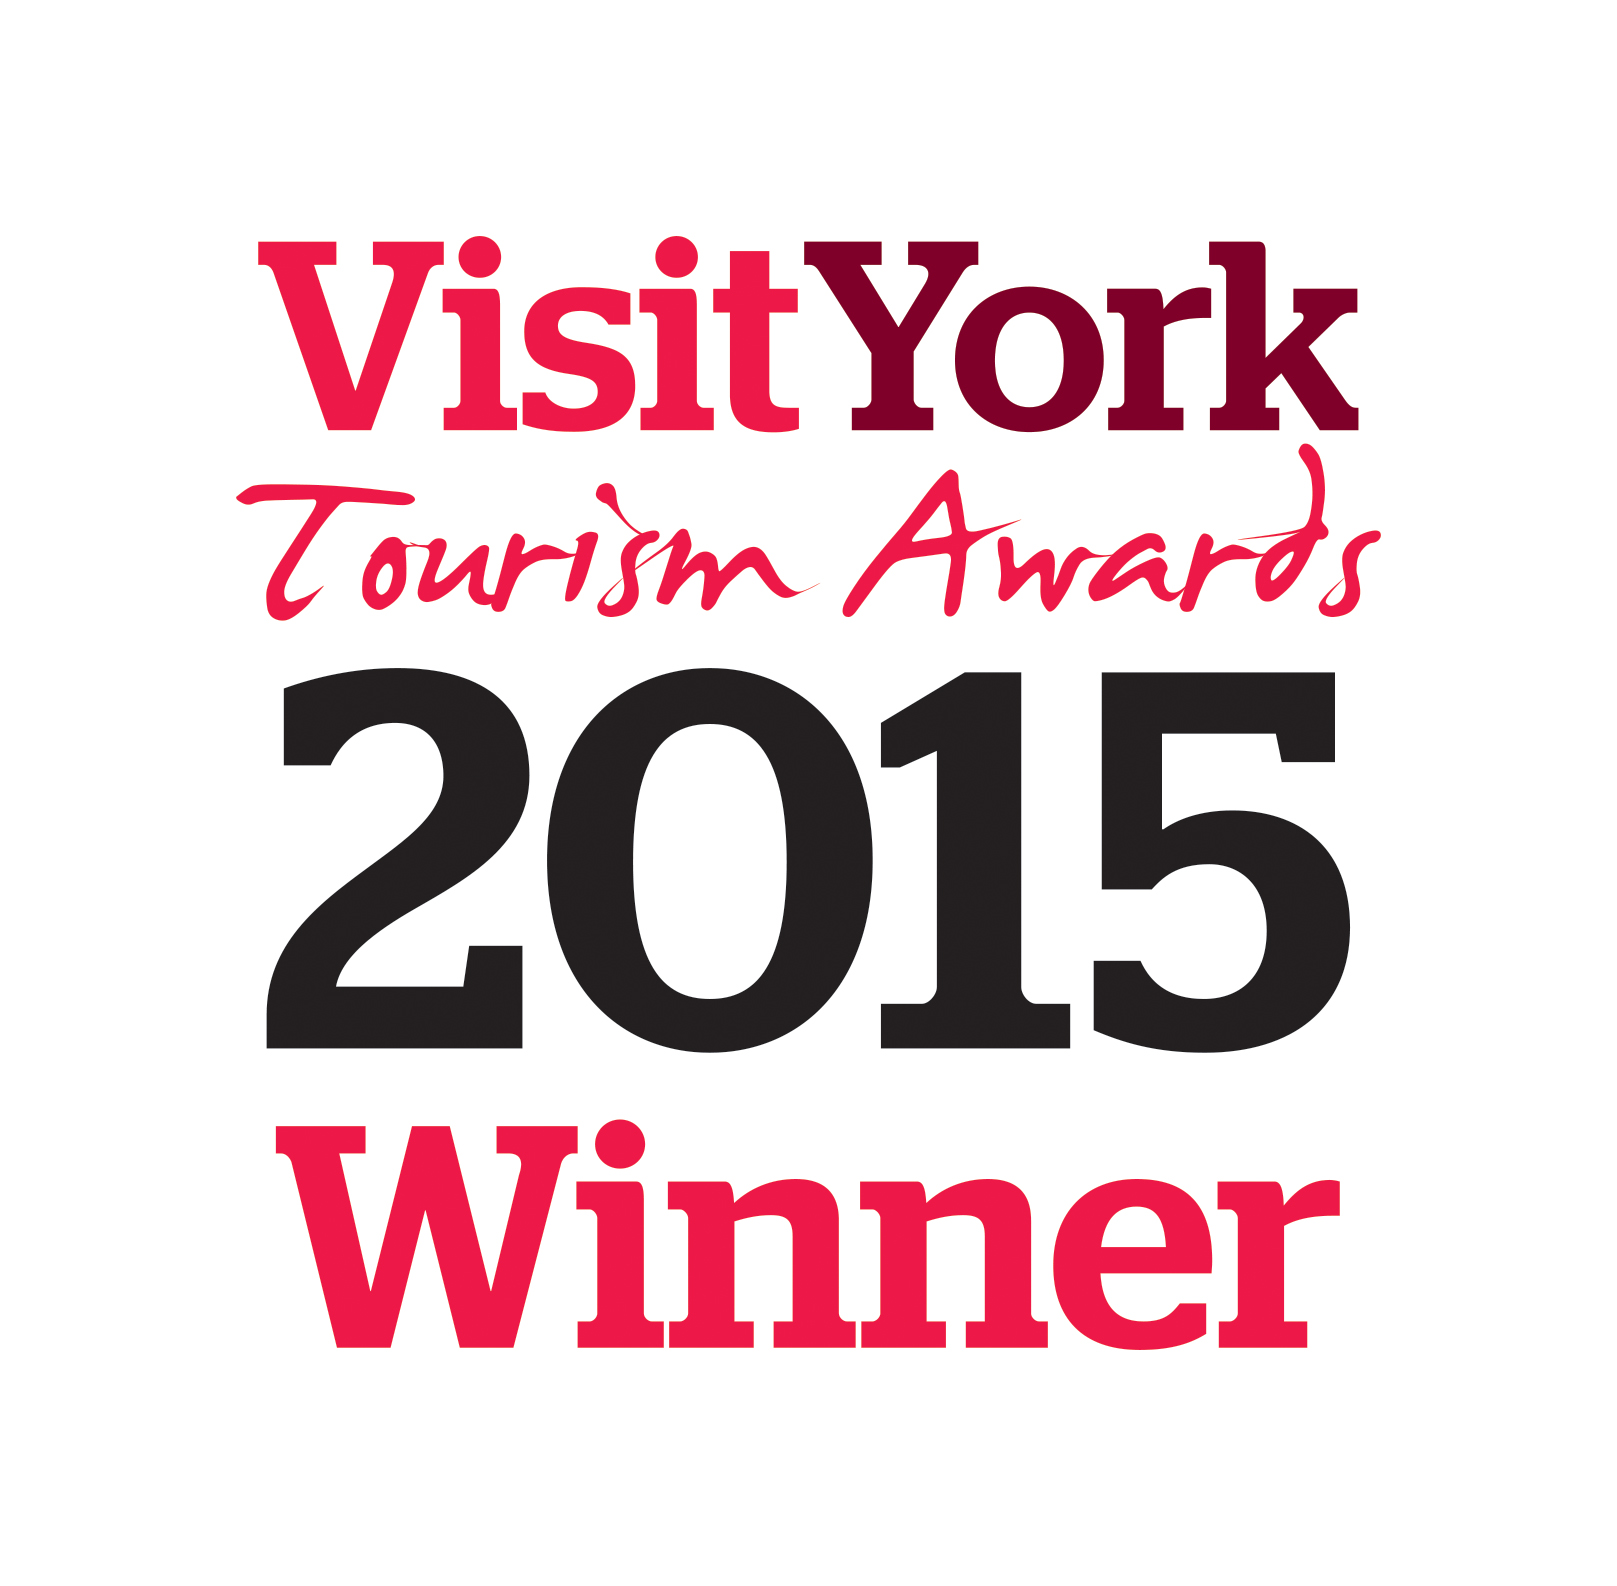 Tourism awards 2015